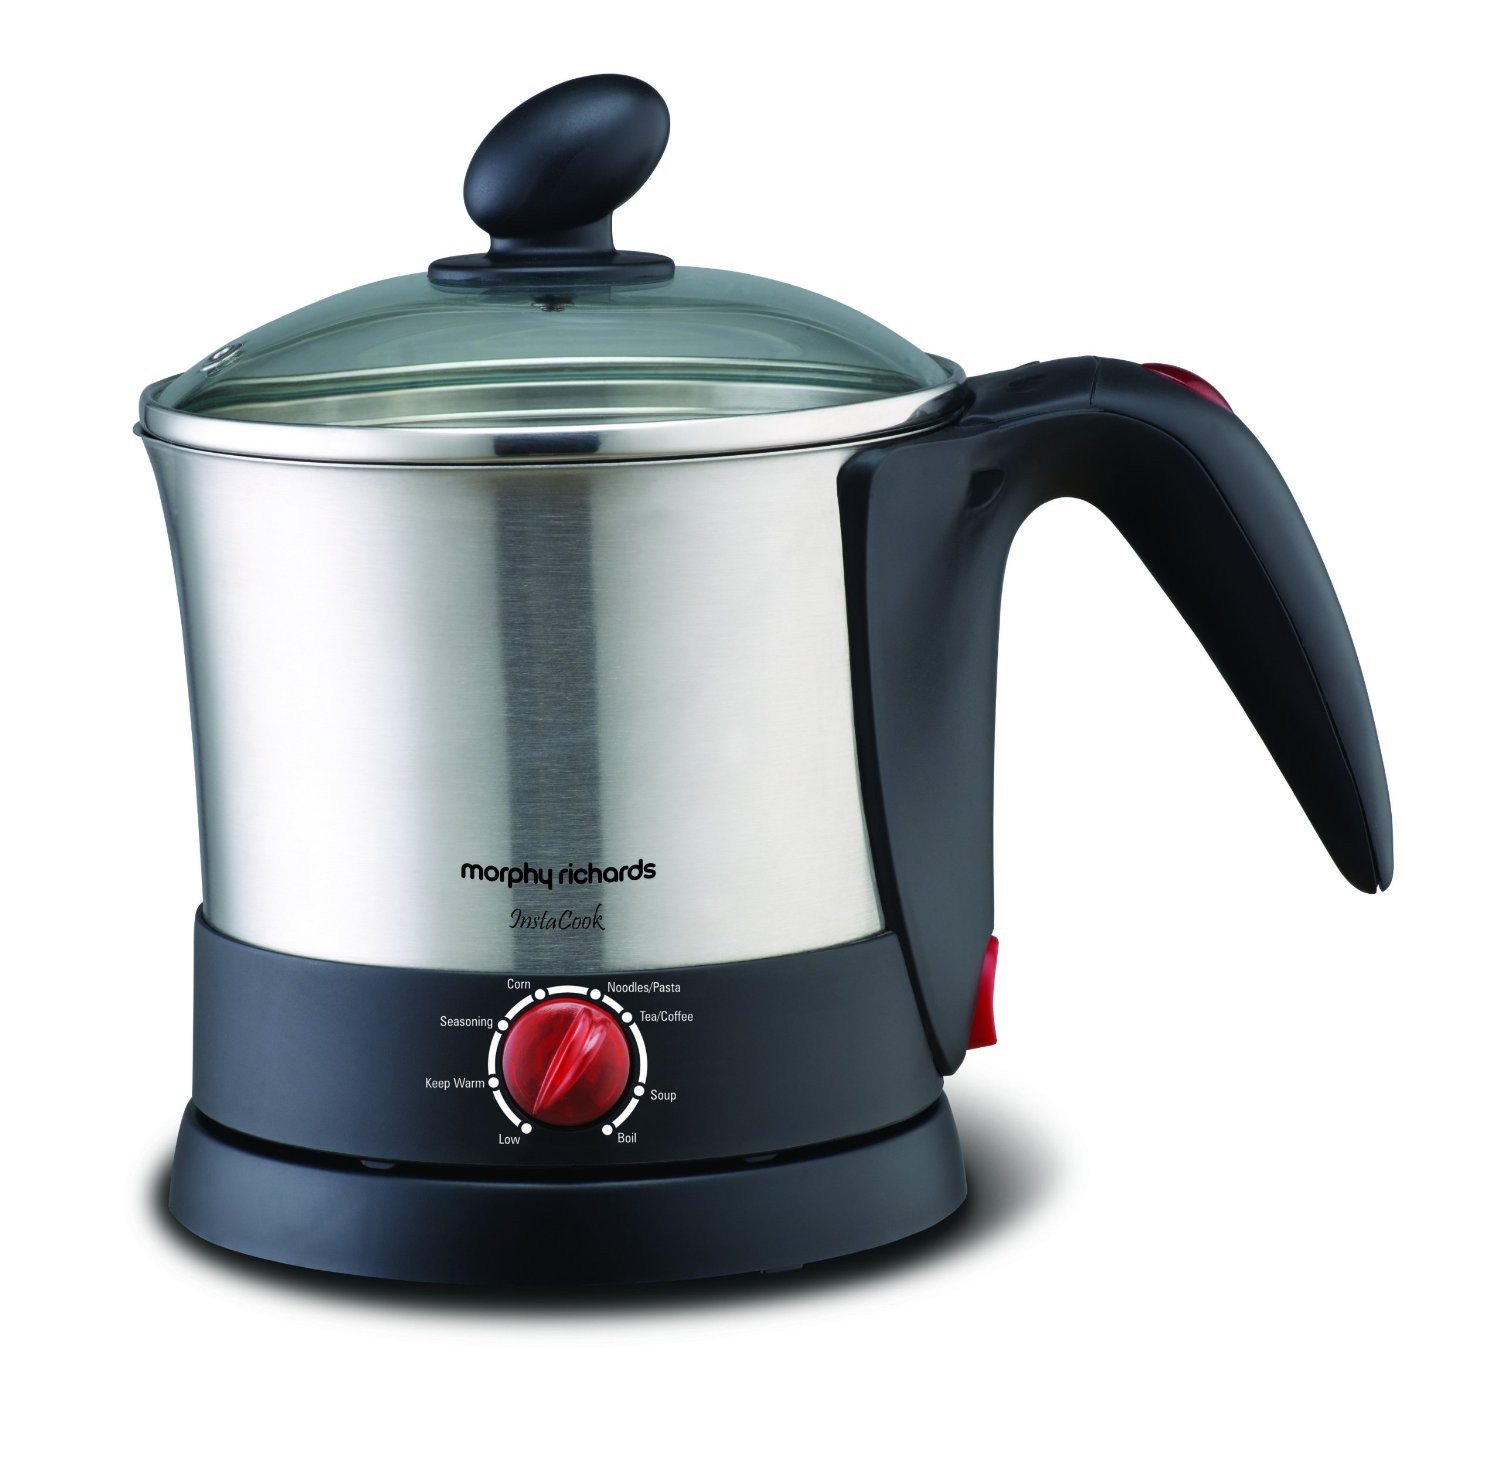 Morphy Richard Electric Kettle Instacook 8 In 1, 1Ltr